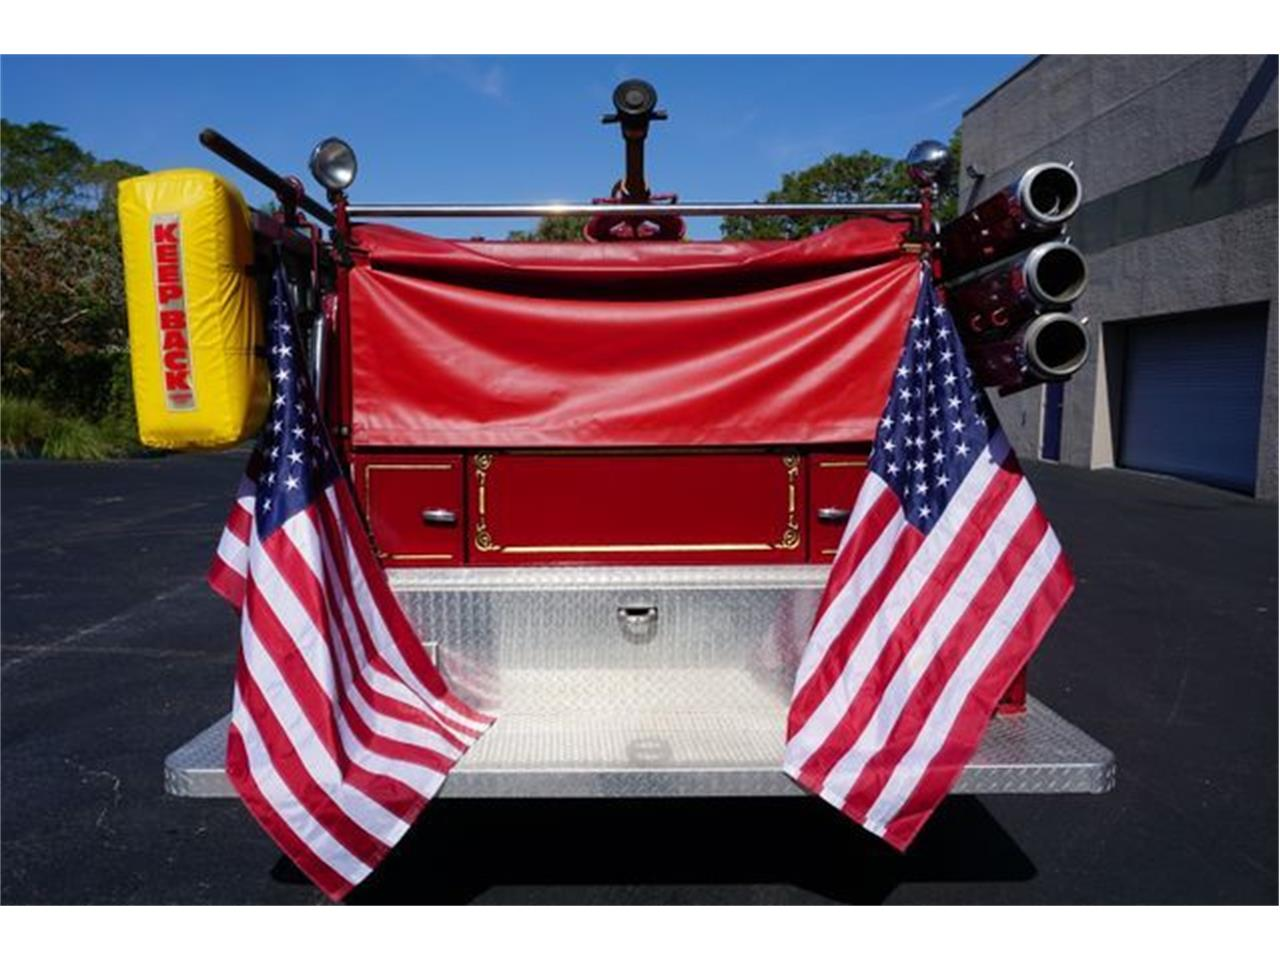 Large Picture of '53 American LaFrance Fire Engine Offered by European Autobody, Inc. - O4GG